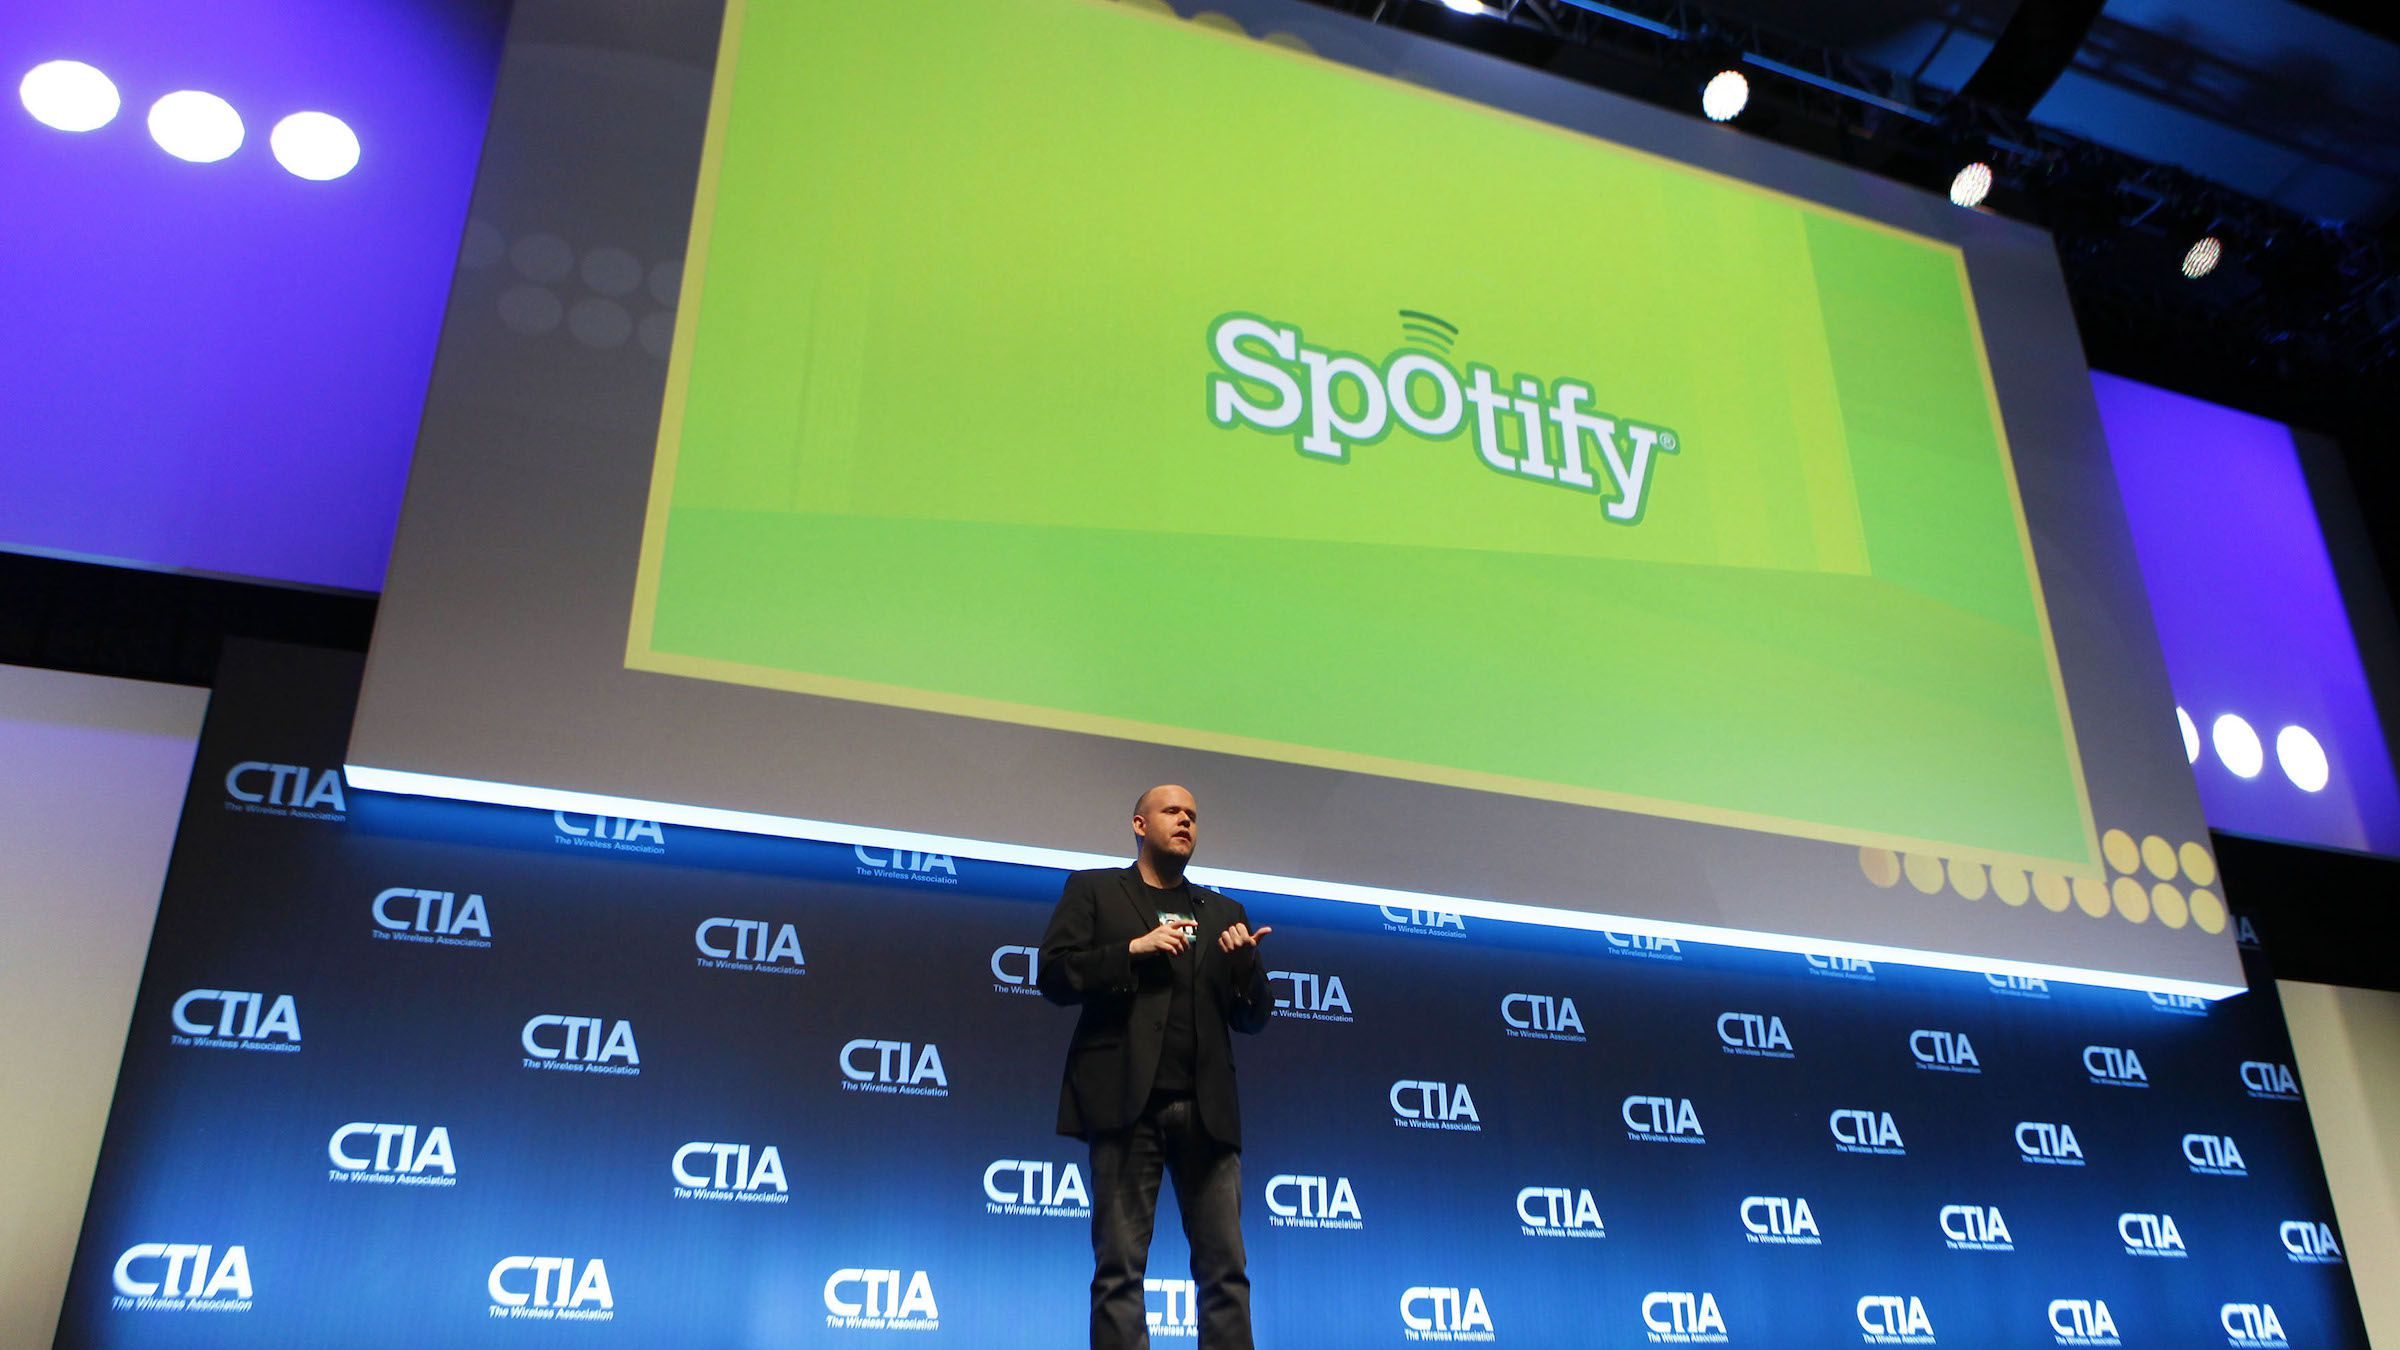 Daniel Ek, CEO & Co-Founder of Spotify, addresses attendees during the International CTIA WIRELESS Conference & Exposition in New Orleans, Louisiana May 9, 2012. REUTERS/Sean Gardner (UNITED STATES - Tags: SCIENCE TECHNOLOGY BUSINESS MEDIA TELECOMS) - RTR31TM0